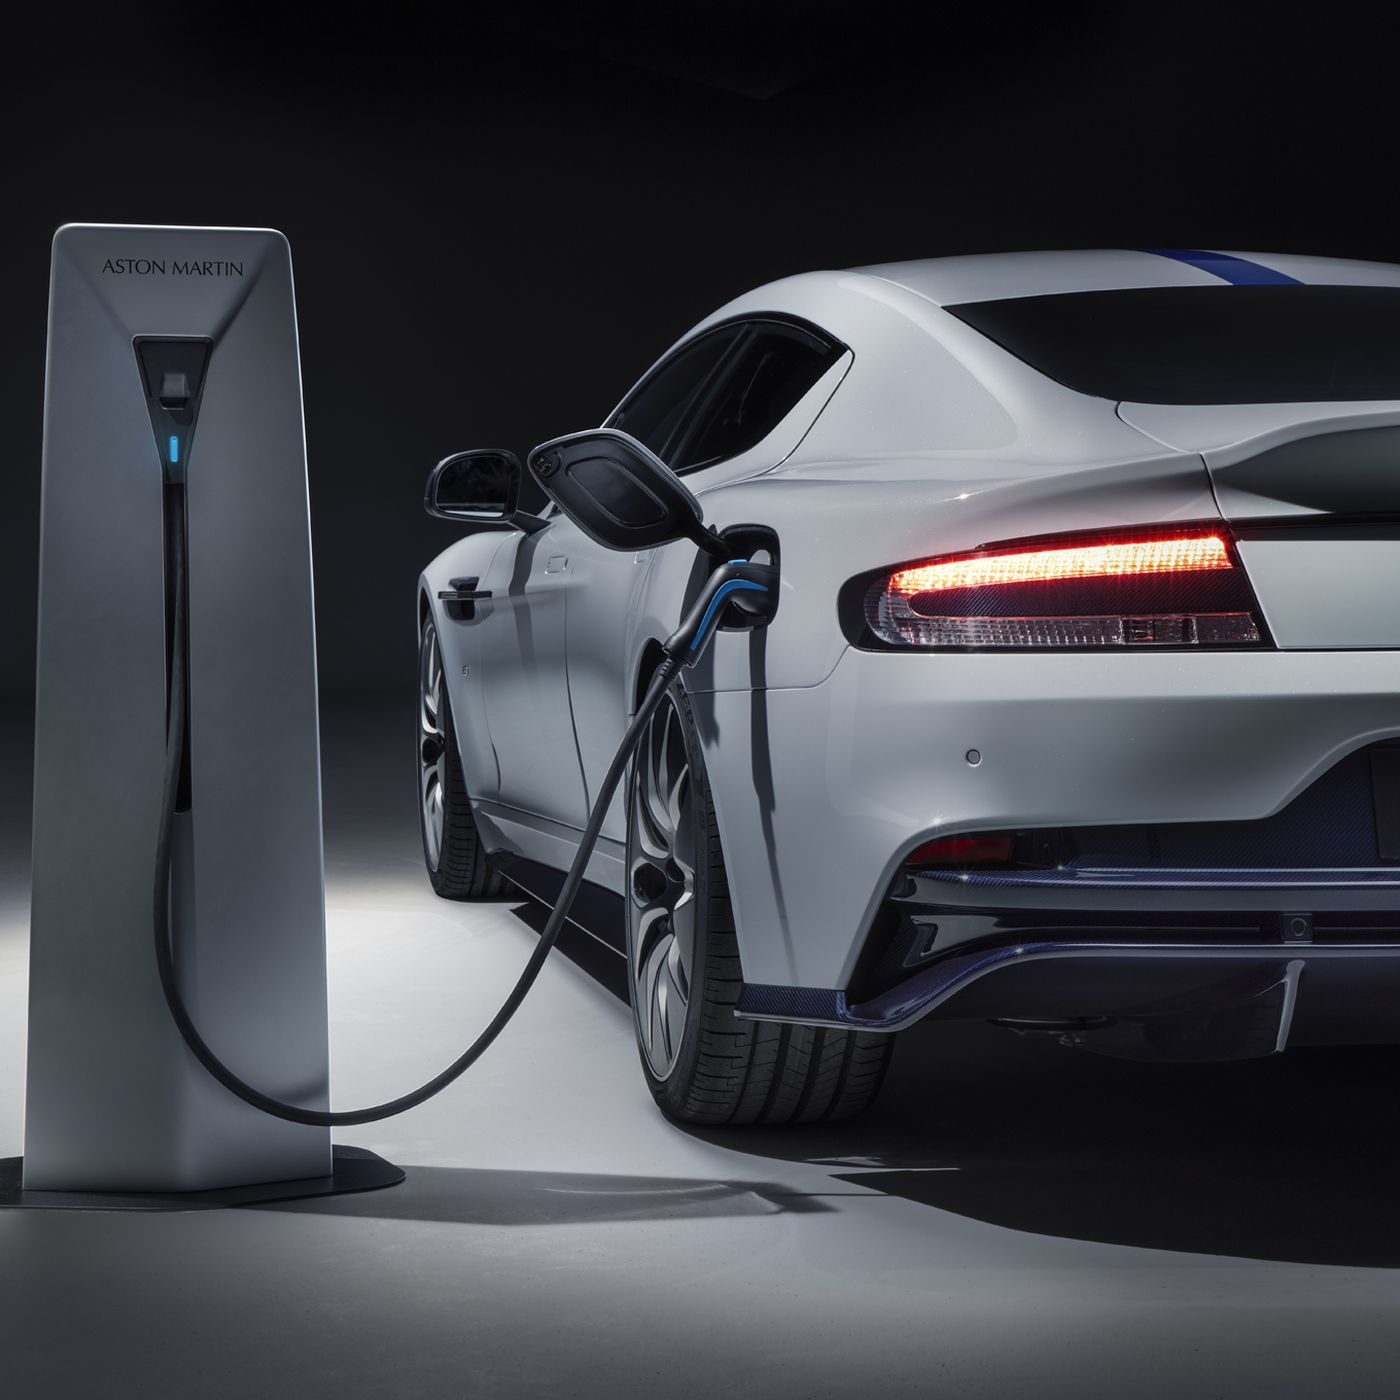 Aston Martin Delays Electric Car Plans After Raising Emergency Funds The Verge